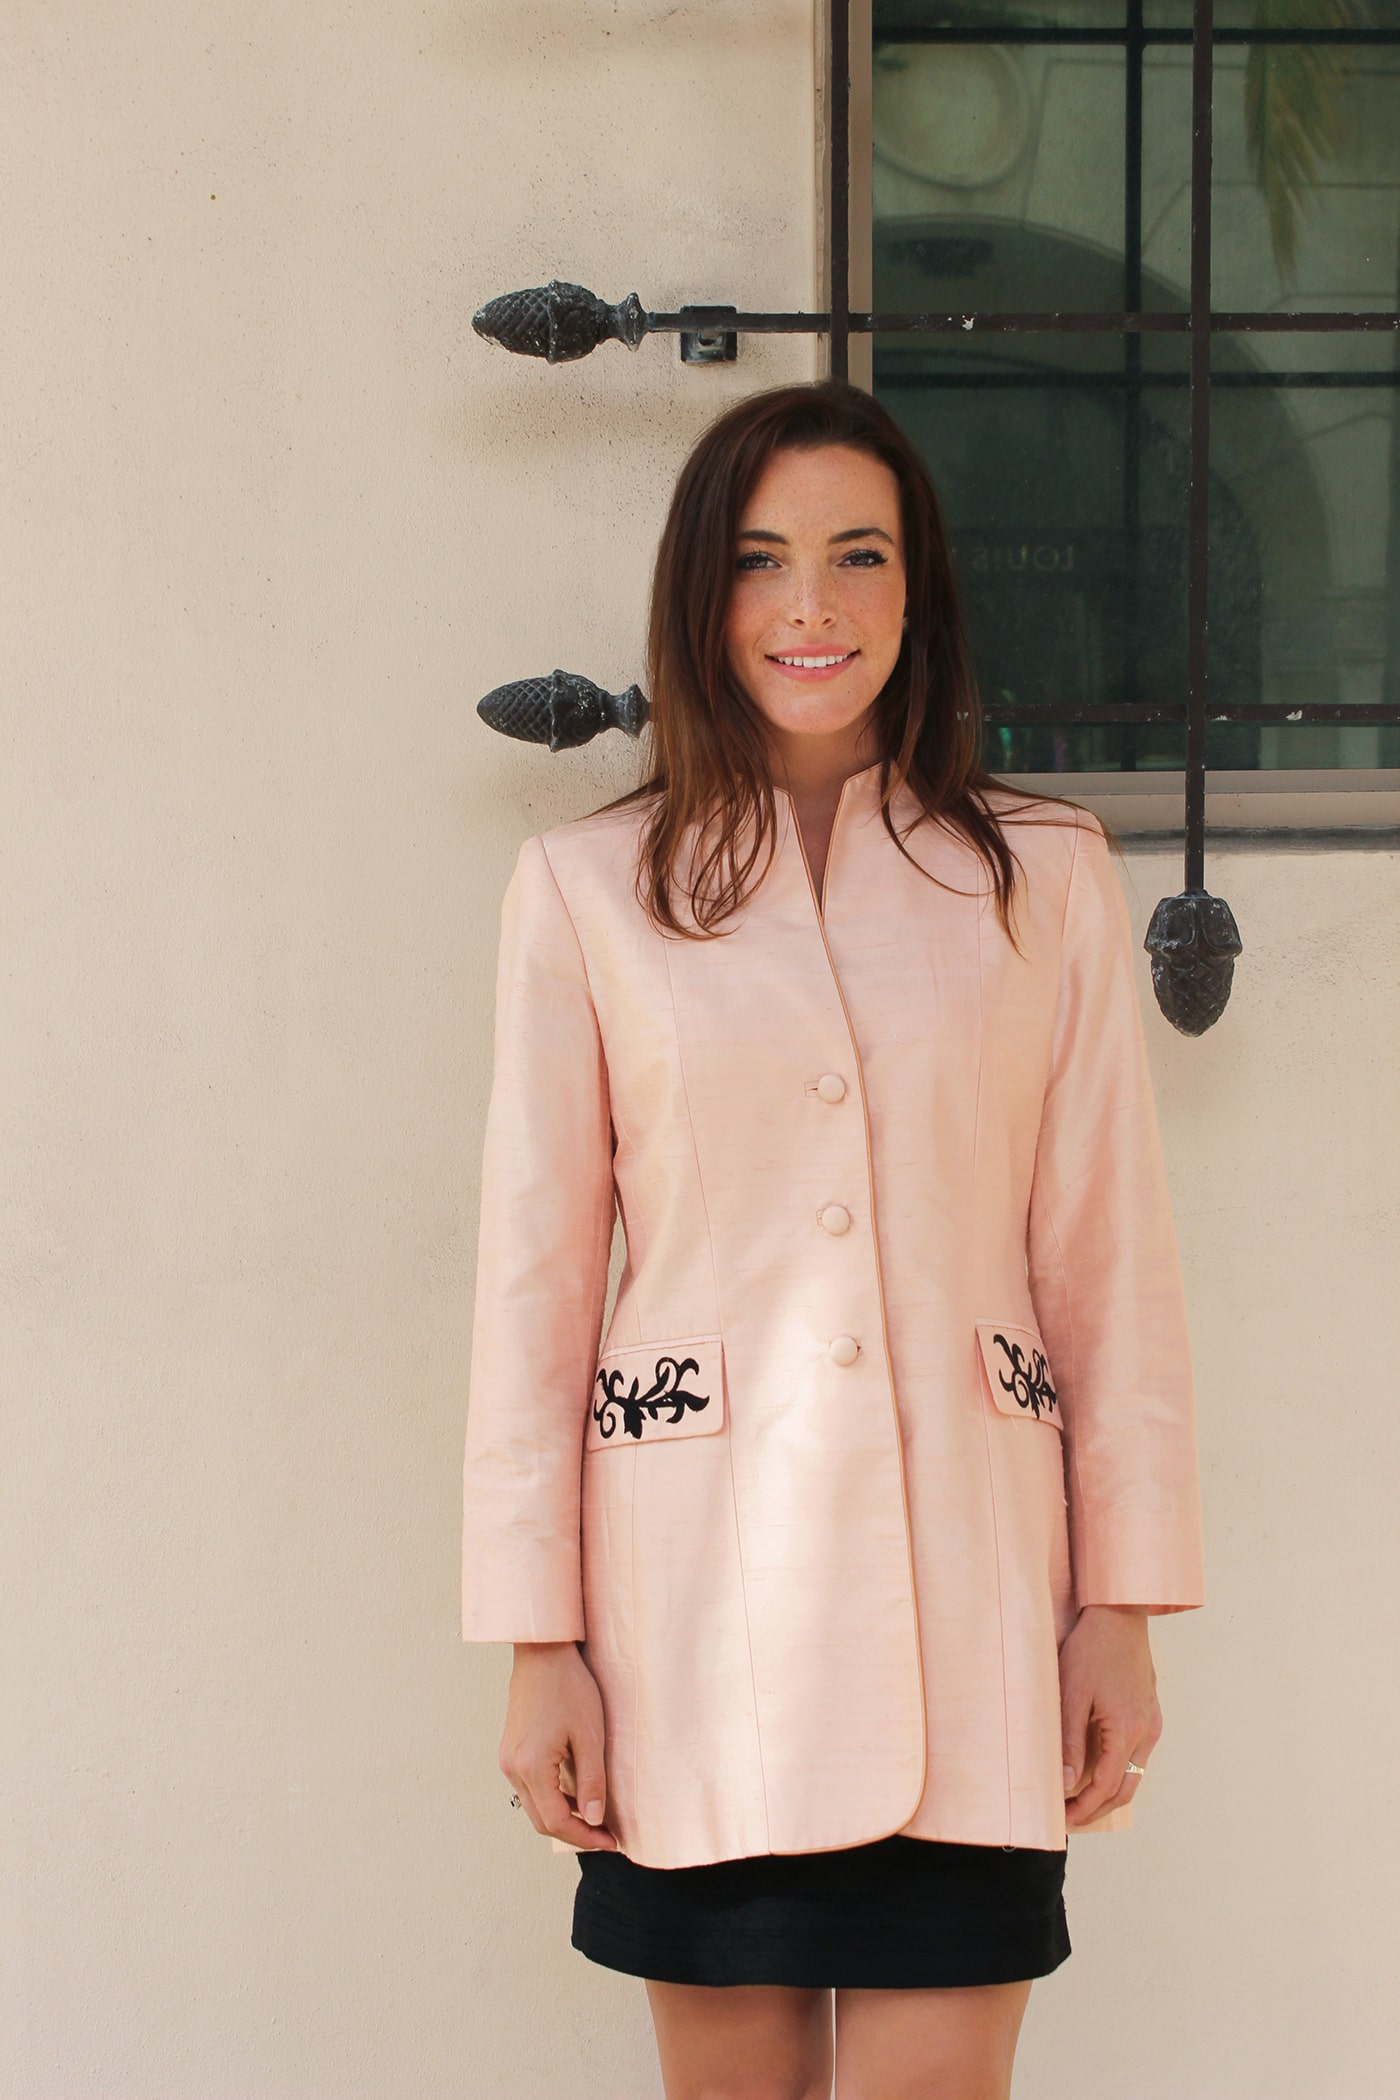 Our powder pink Crosby Jacket is made from dupioni silk and features a vine pattern in black appliqué adorning the two waist-high front pocket flaps as well as the sleeves, where it is bordered by a row of buttons on each arm.